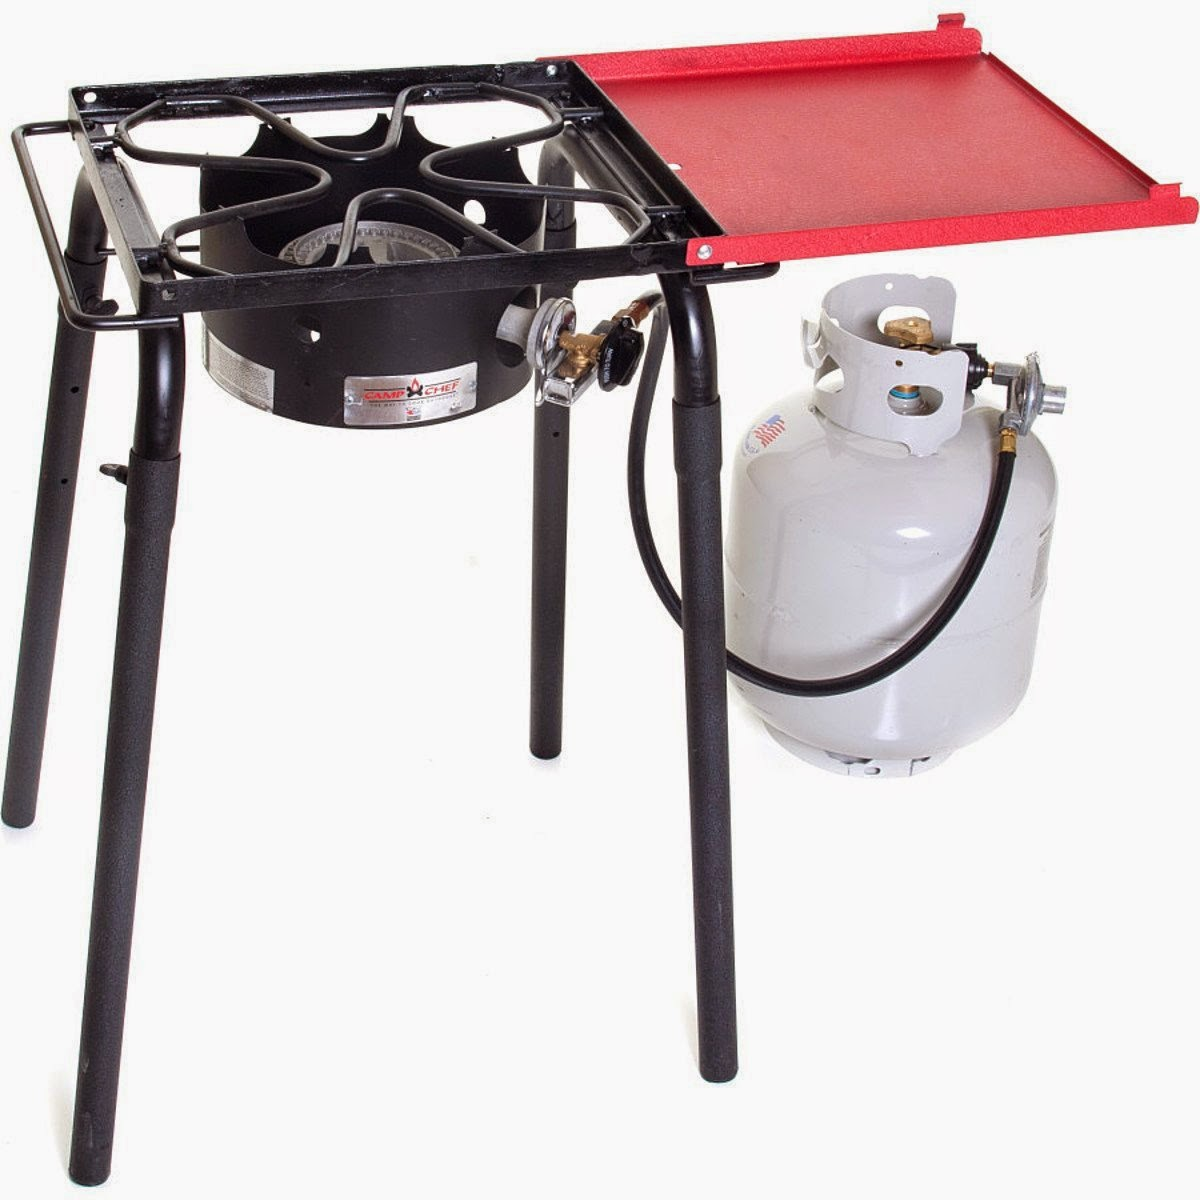 Top 10 Gas Burner for outdoor cooker for Camping, Party ...